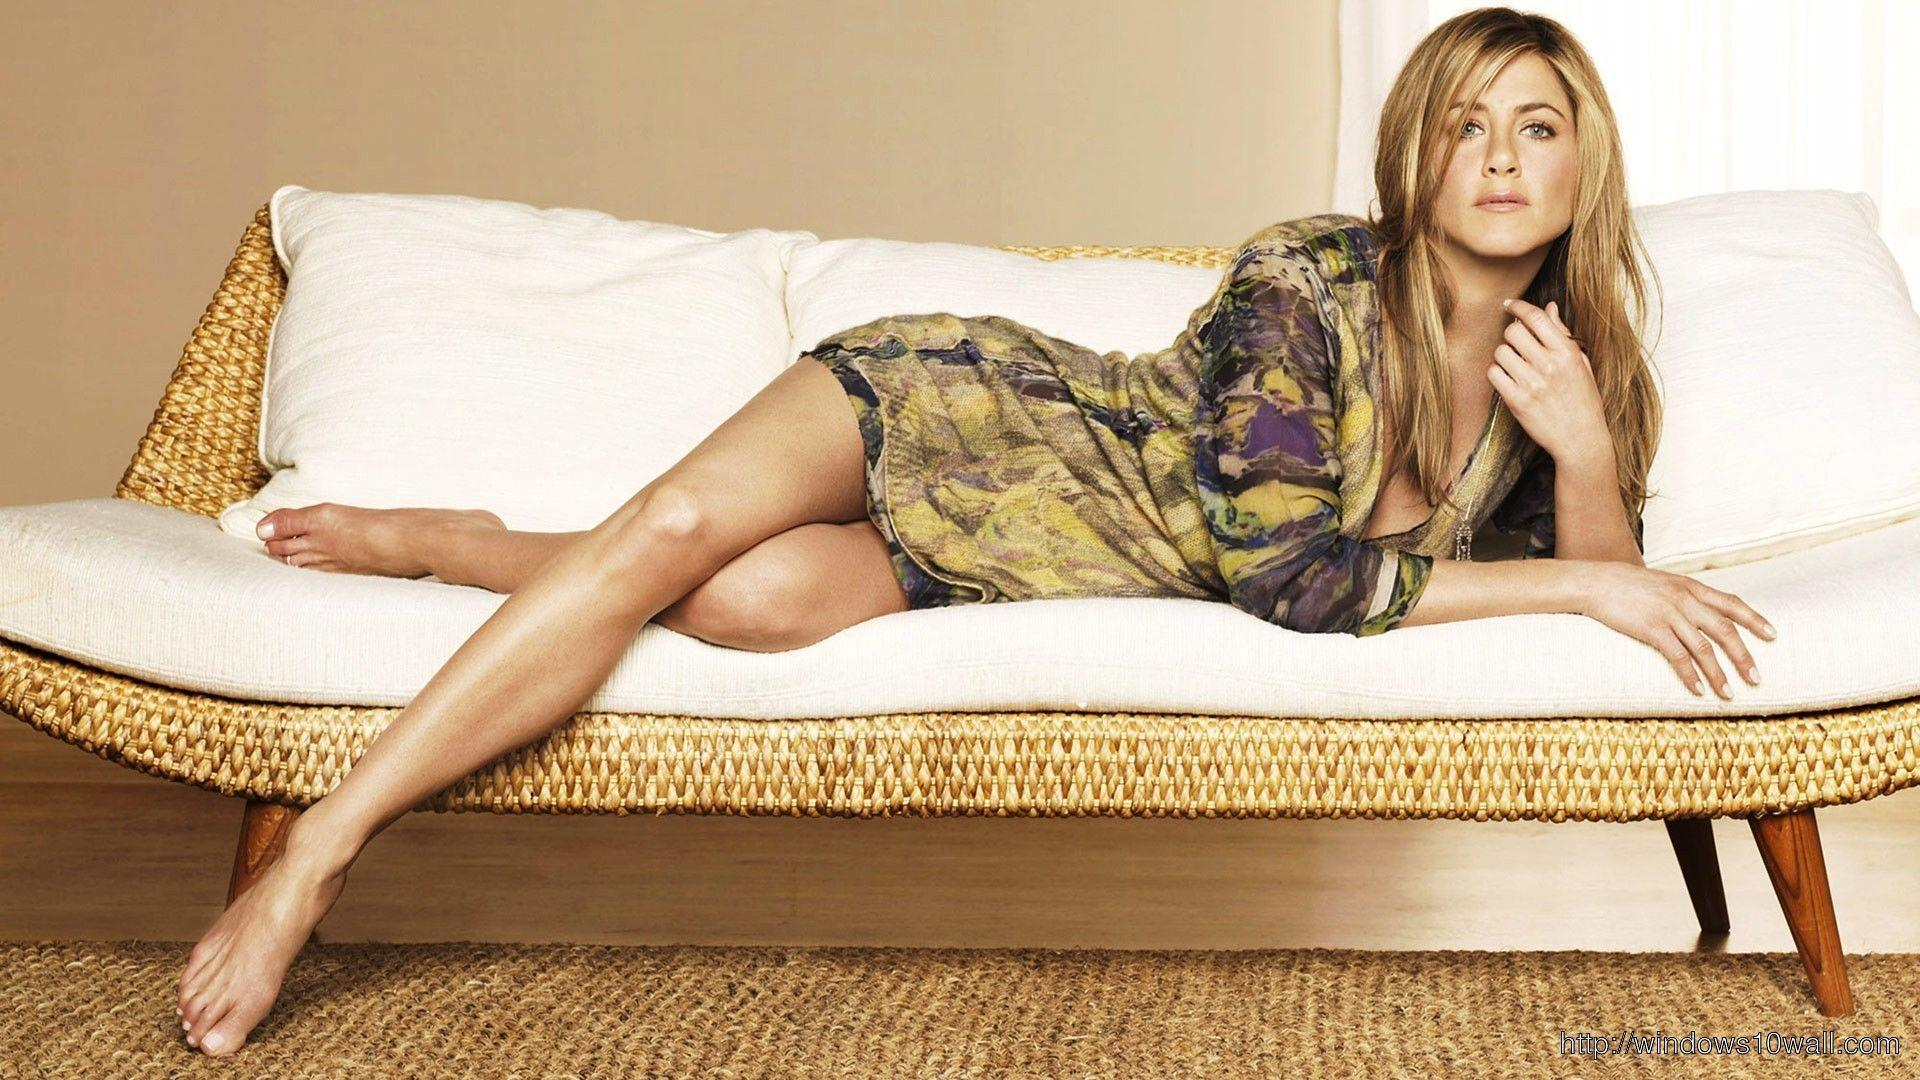 Jennifer Aniston HD Wallpaper | New HD Wallpapers Download